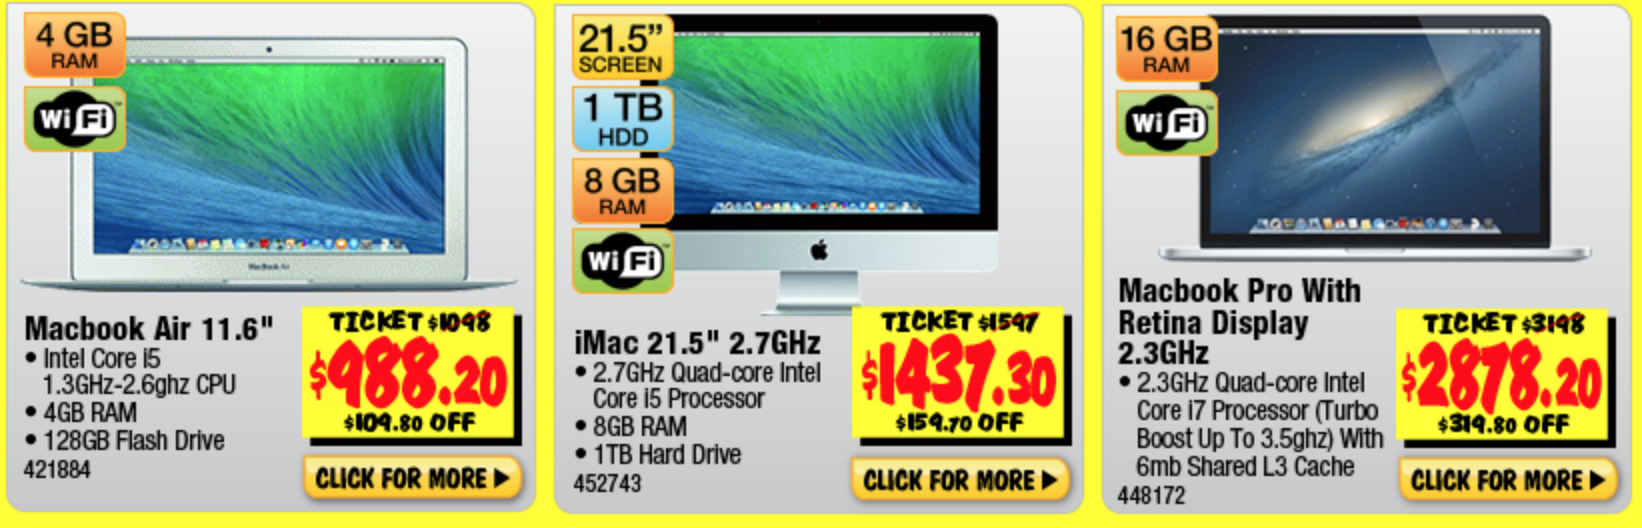 10% off MacBook Pro MacBook Air iMac